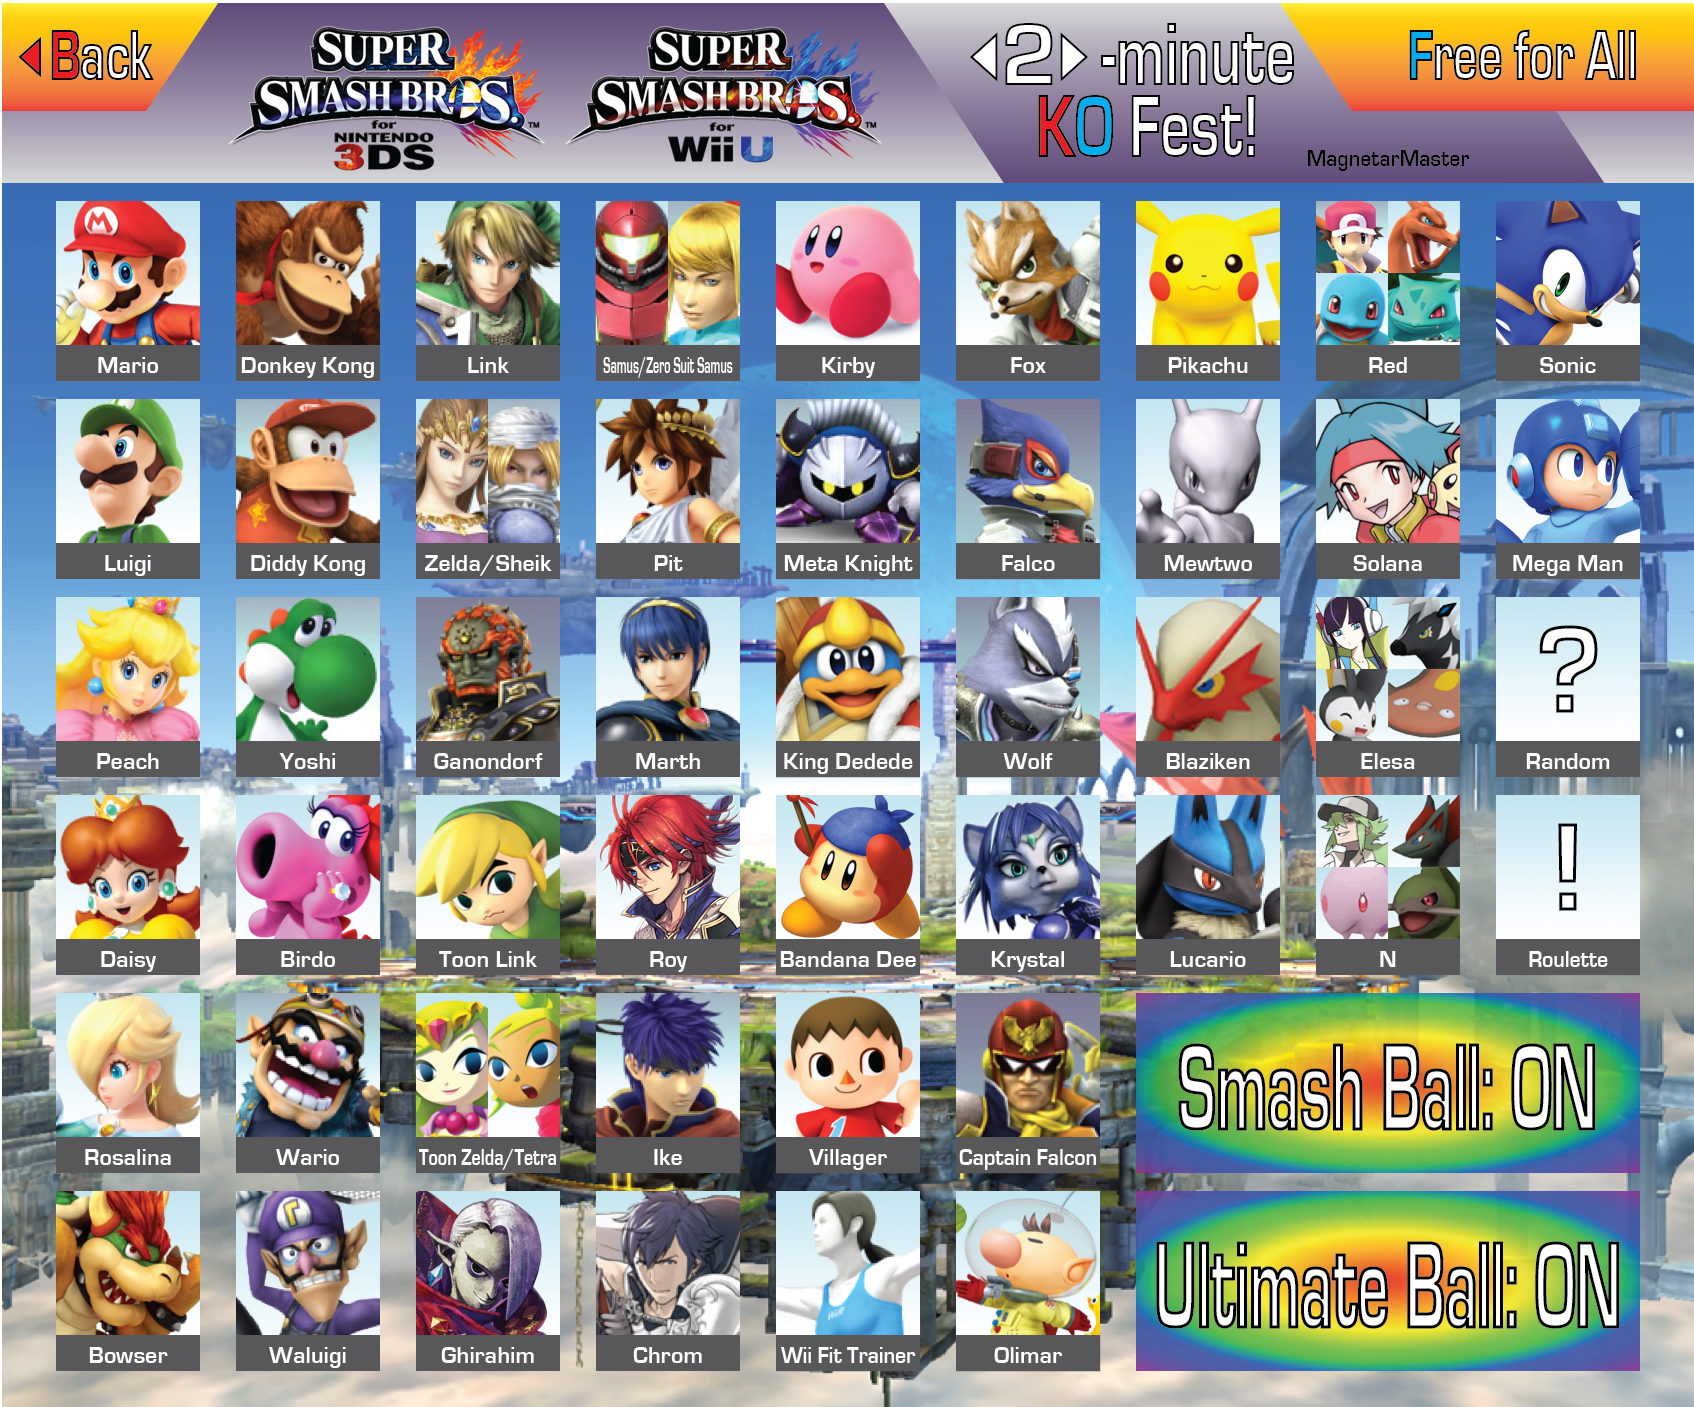 Which do you think is the least played character in smash ...